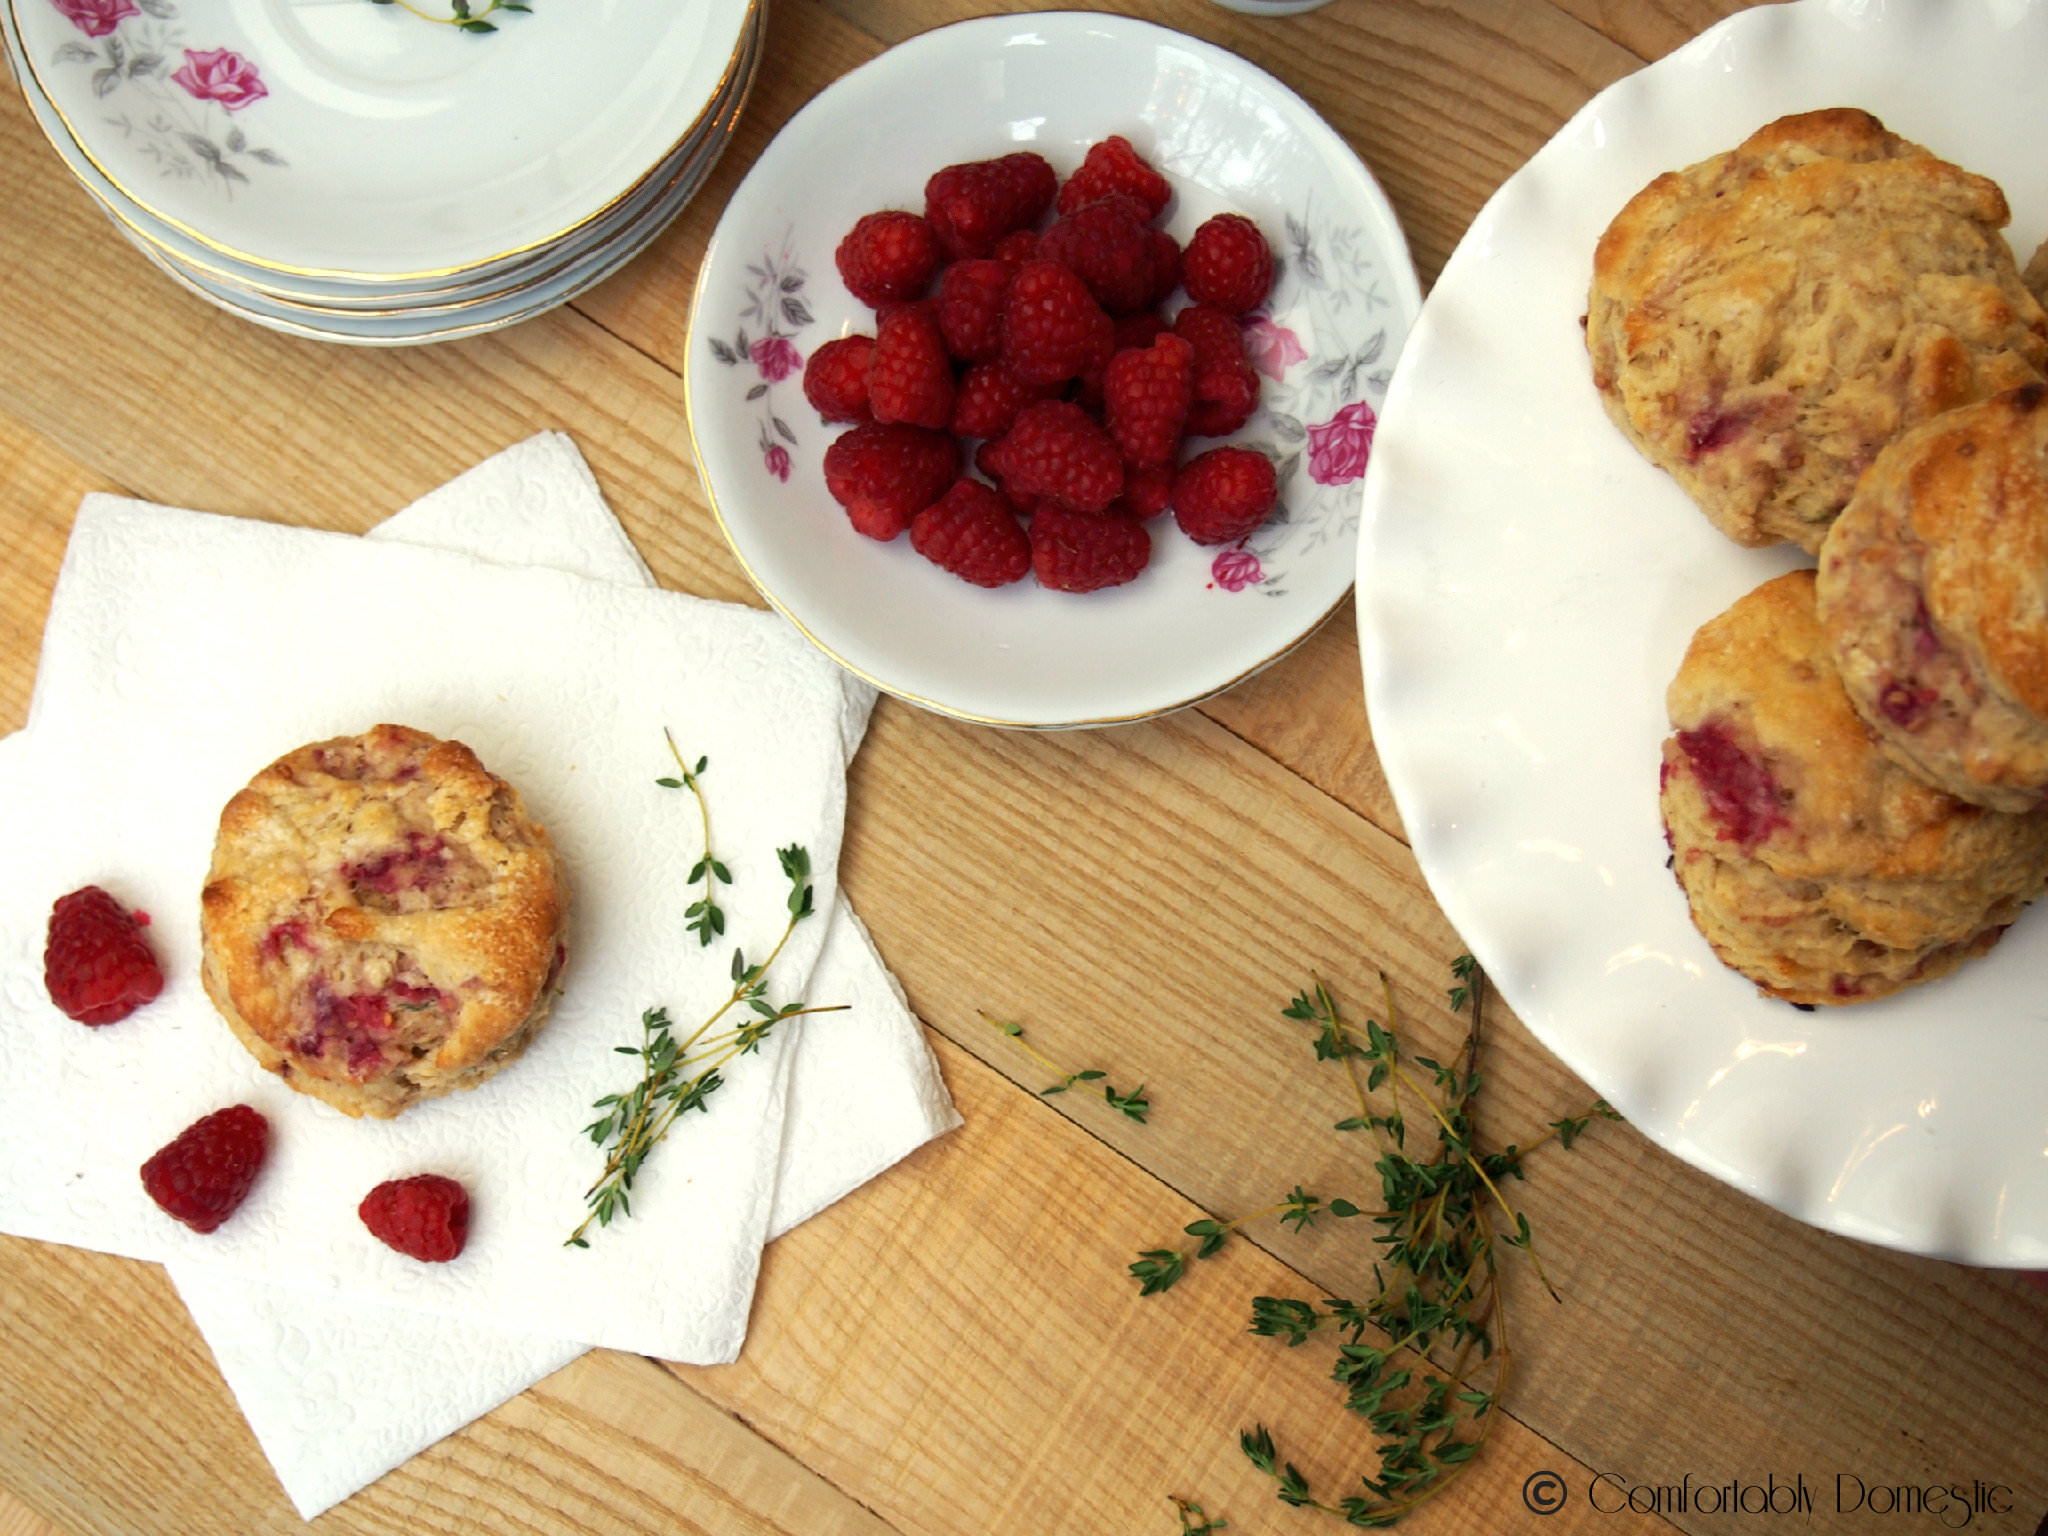 Raspberry thyme goat cheese biscuits are the perfect treat with a hot cup of coffee or afternoon tea. Tender and flaky, with just the right touch of raspberry sweetness to compliment the thyme and creamy goat cheese. | ComfortablyDomestic.com